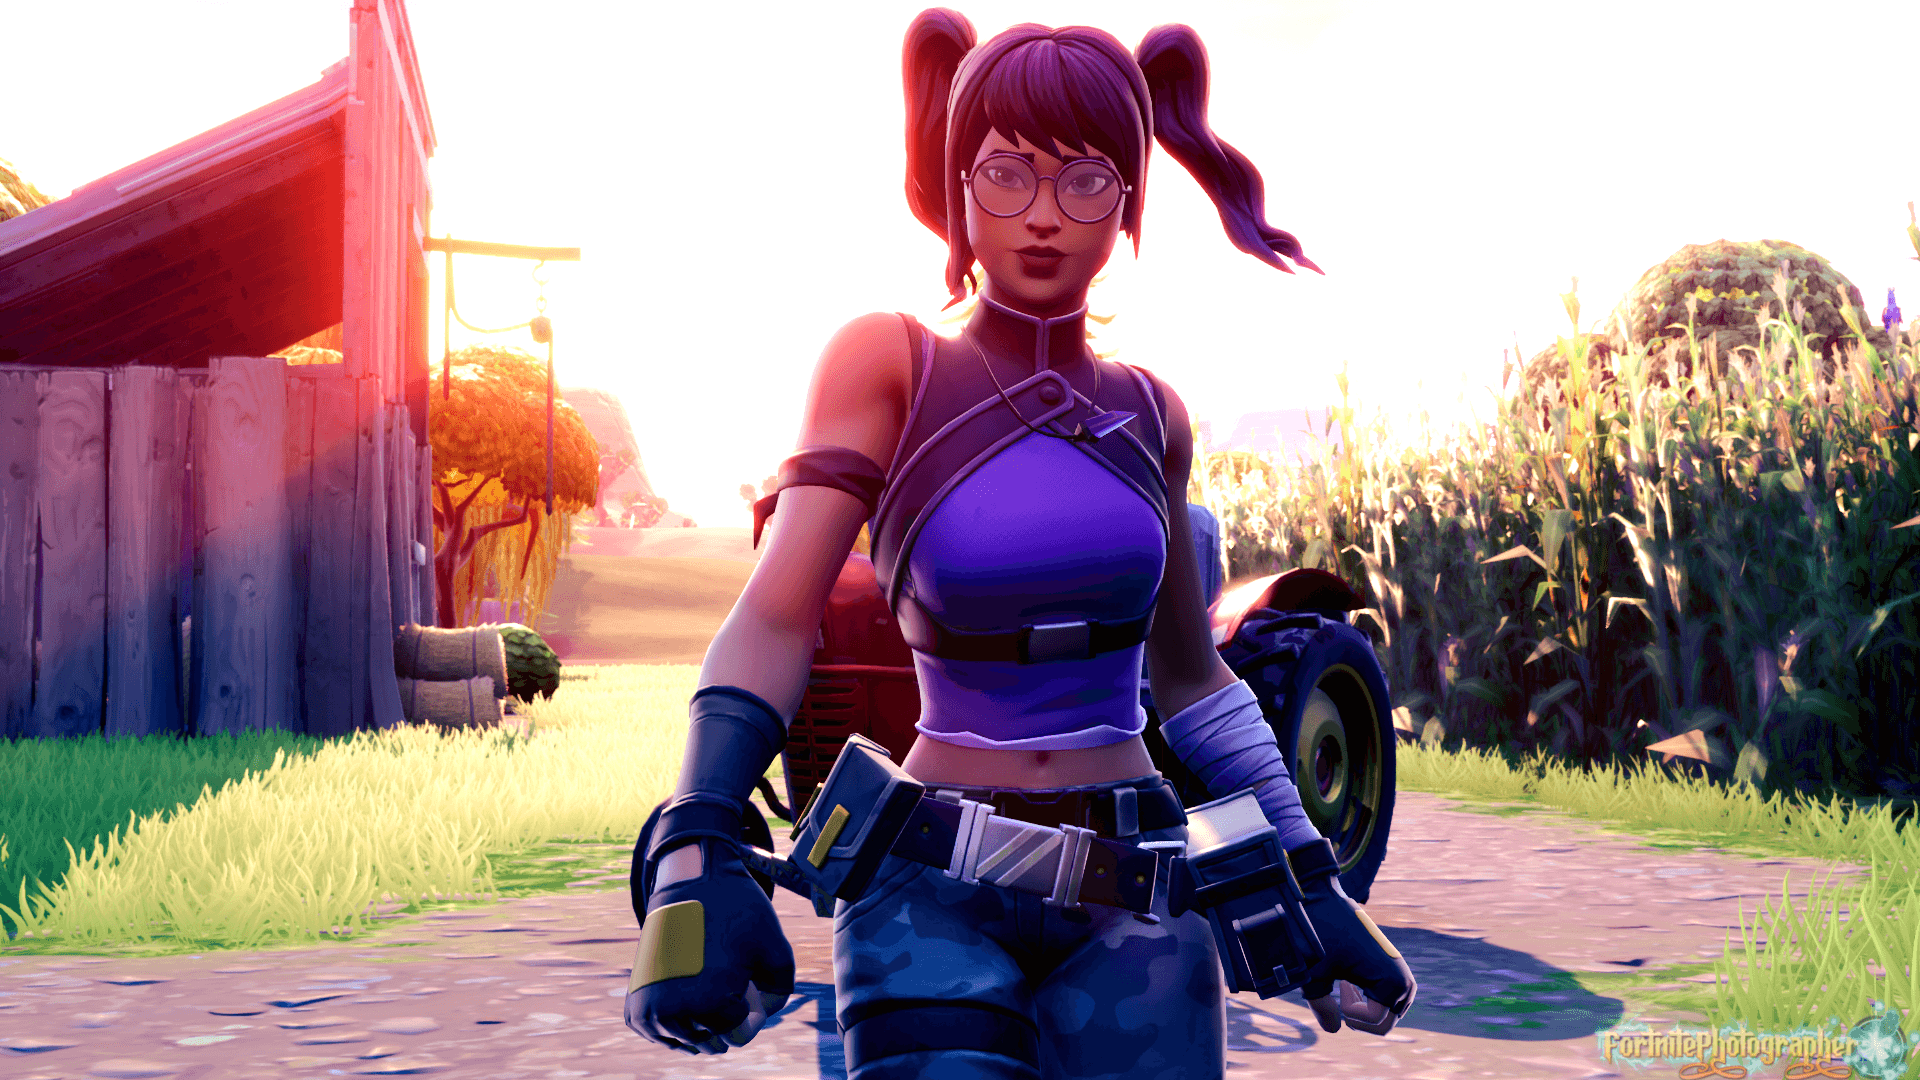 Crystal Fortnite Anime Wallpapers Wallpaper Cave